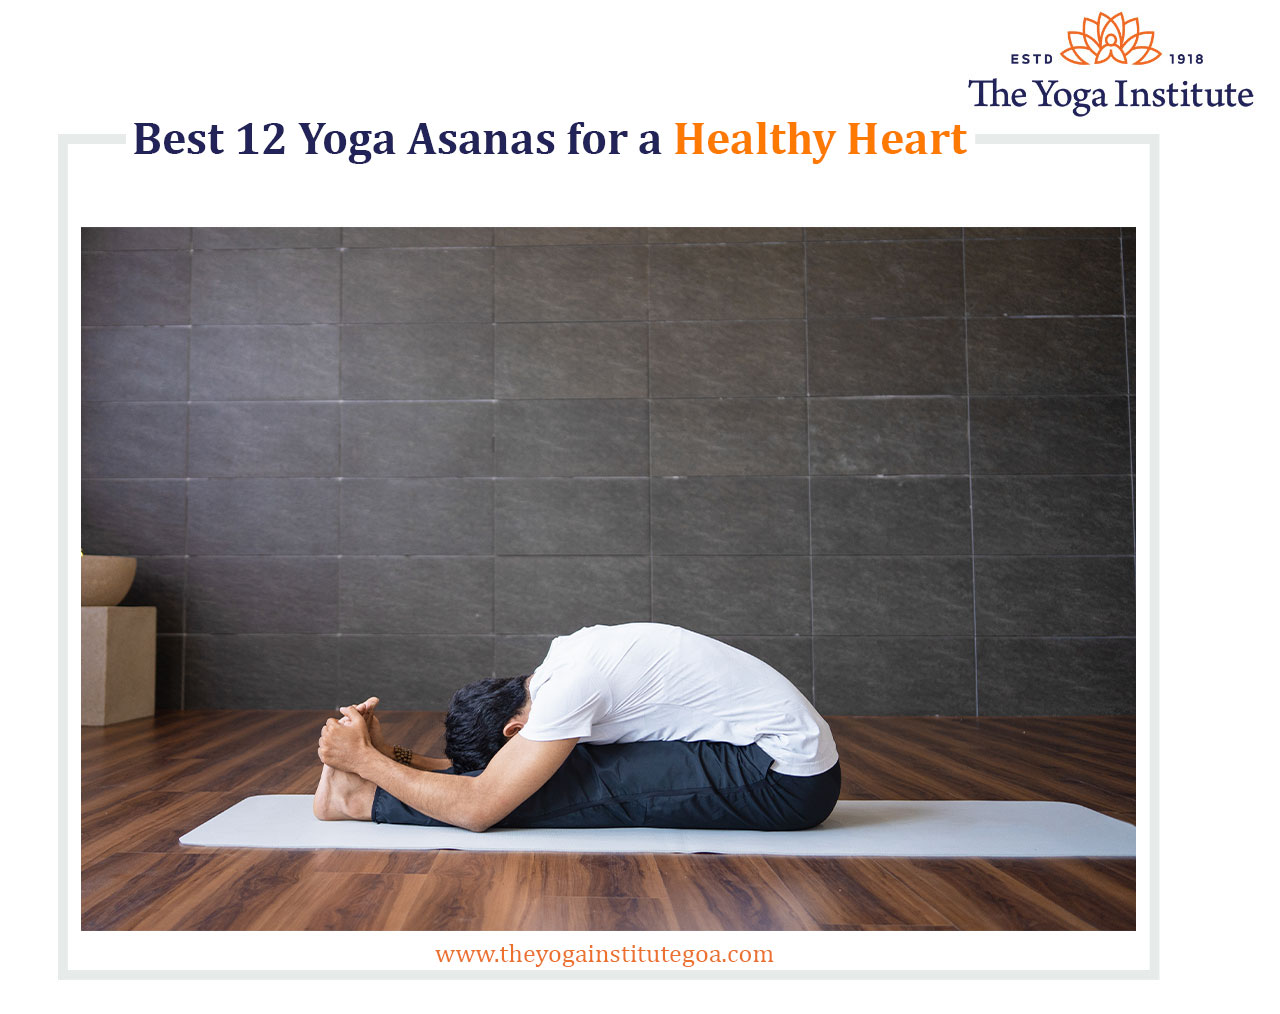 Yoga Asanas for a Healthy Heart